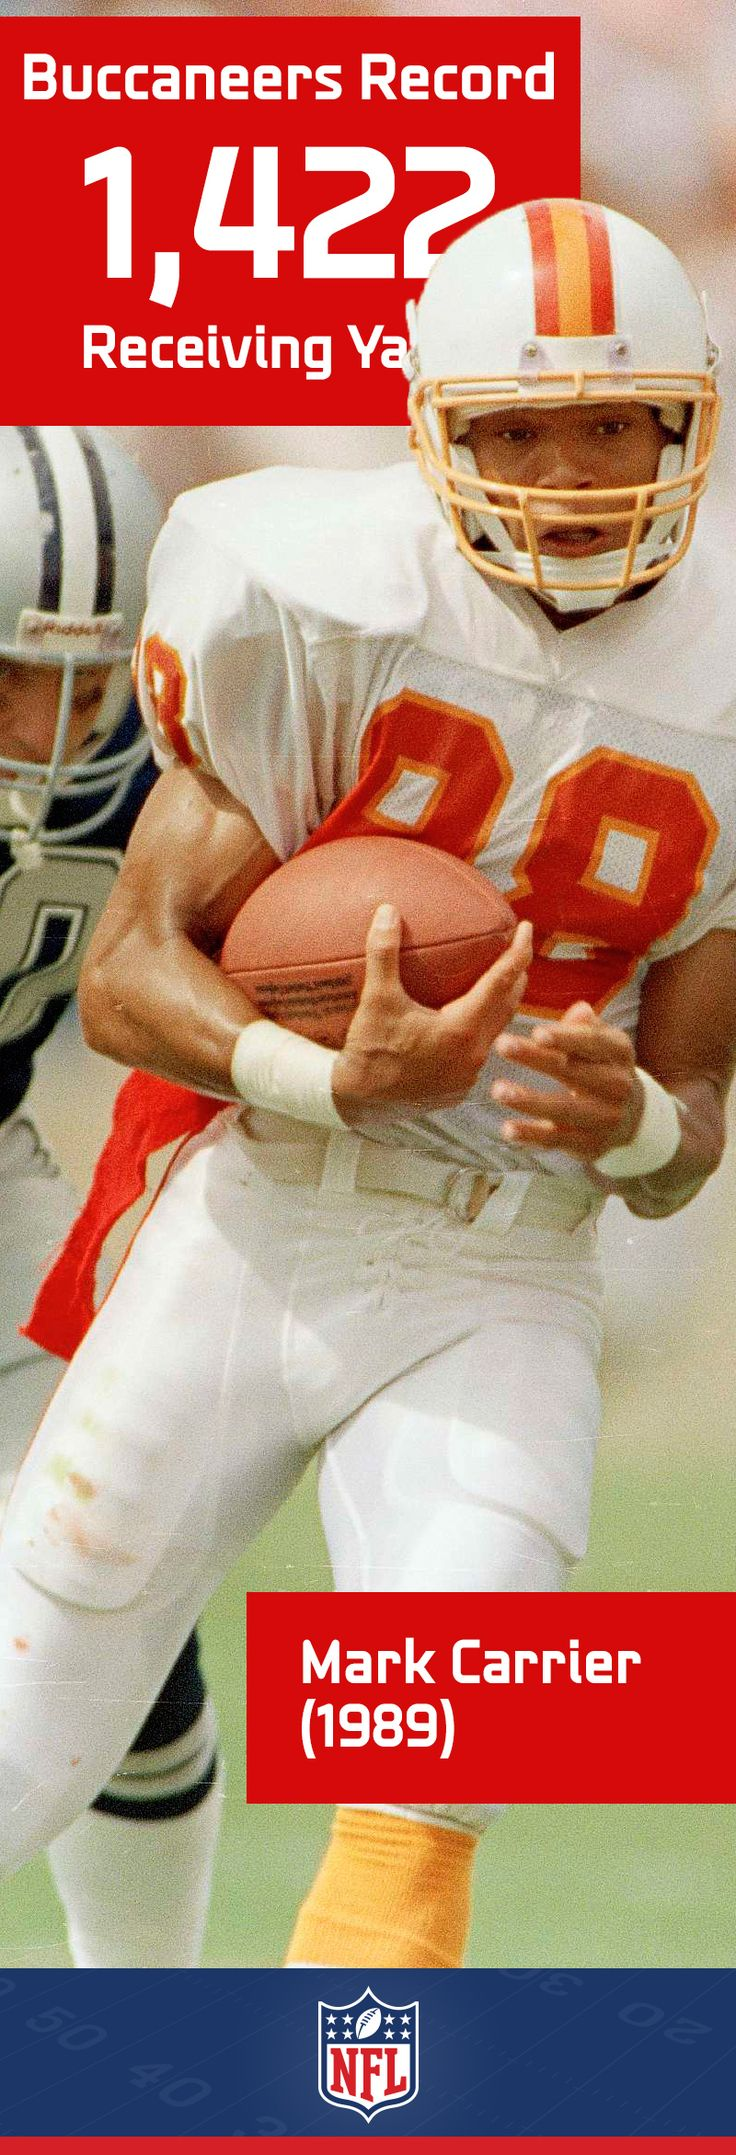 Mark Carrier had a career year in 1989 when he snagged 1,422 receiving yards and 9 touchdowns.